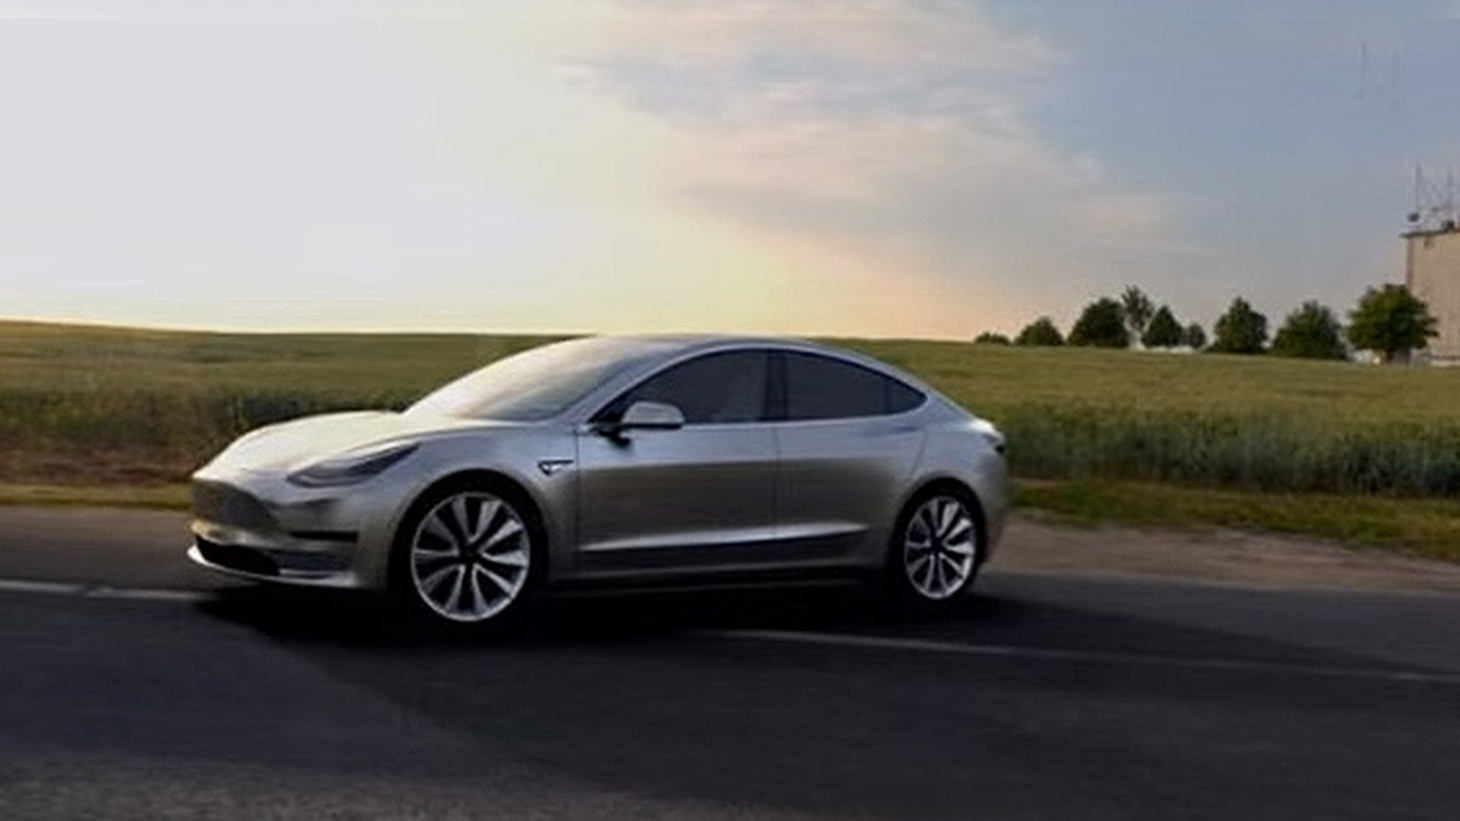 Cheating on tests for diesel engine emissions will cost Volkswagen billions of dollars. It's also helping to boost the development for alternatives to the internal combustion engine… and electric cars look like the wave of the future.